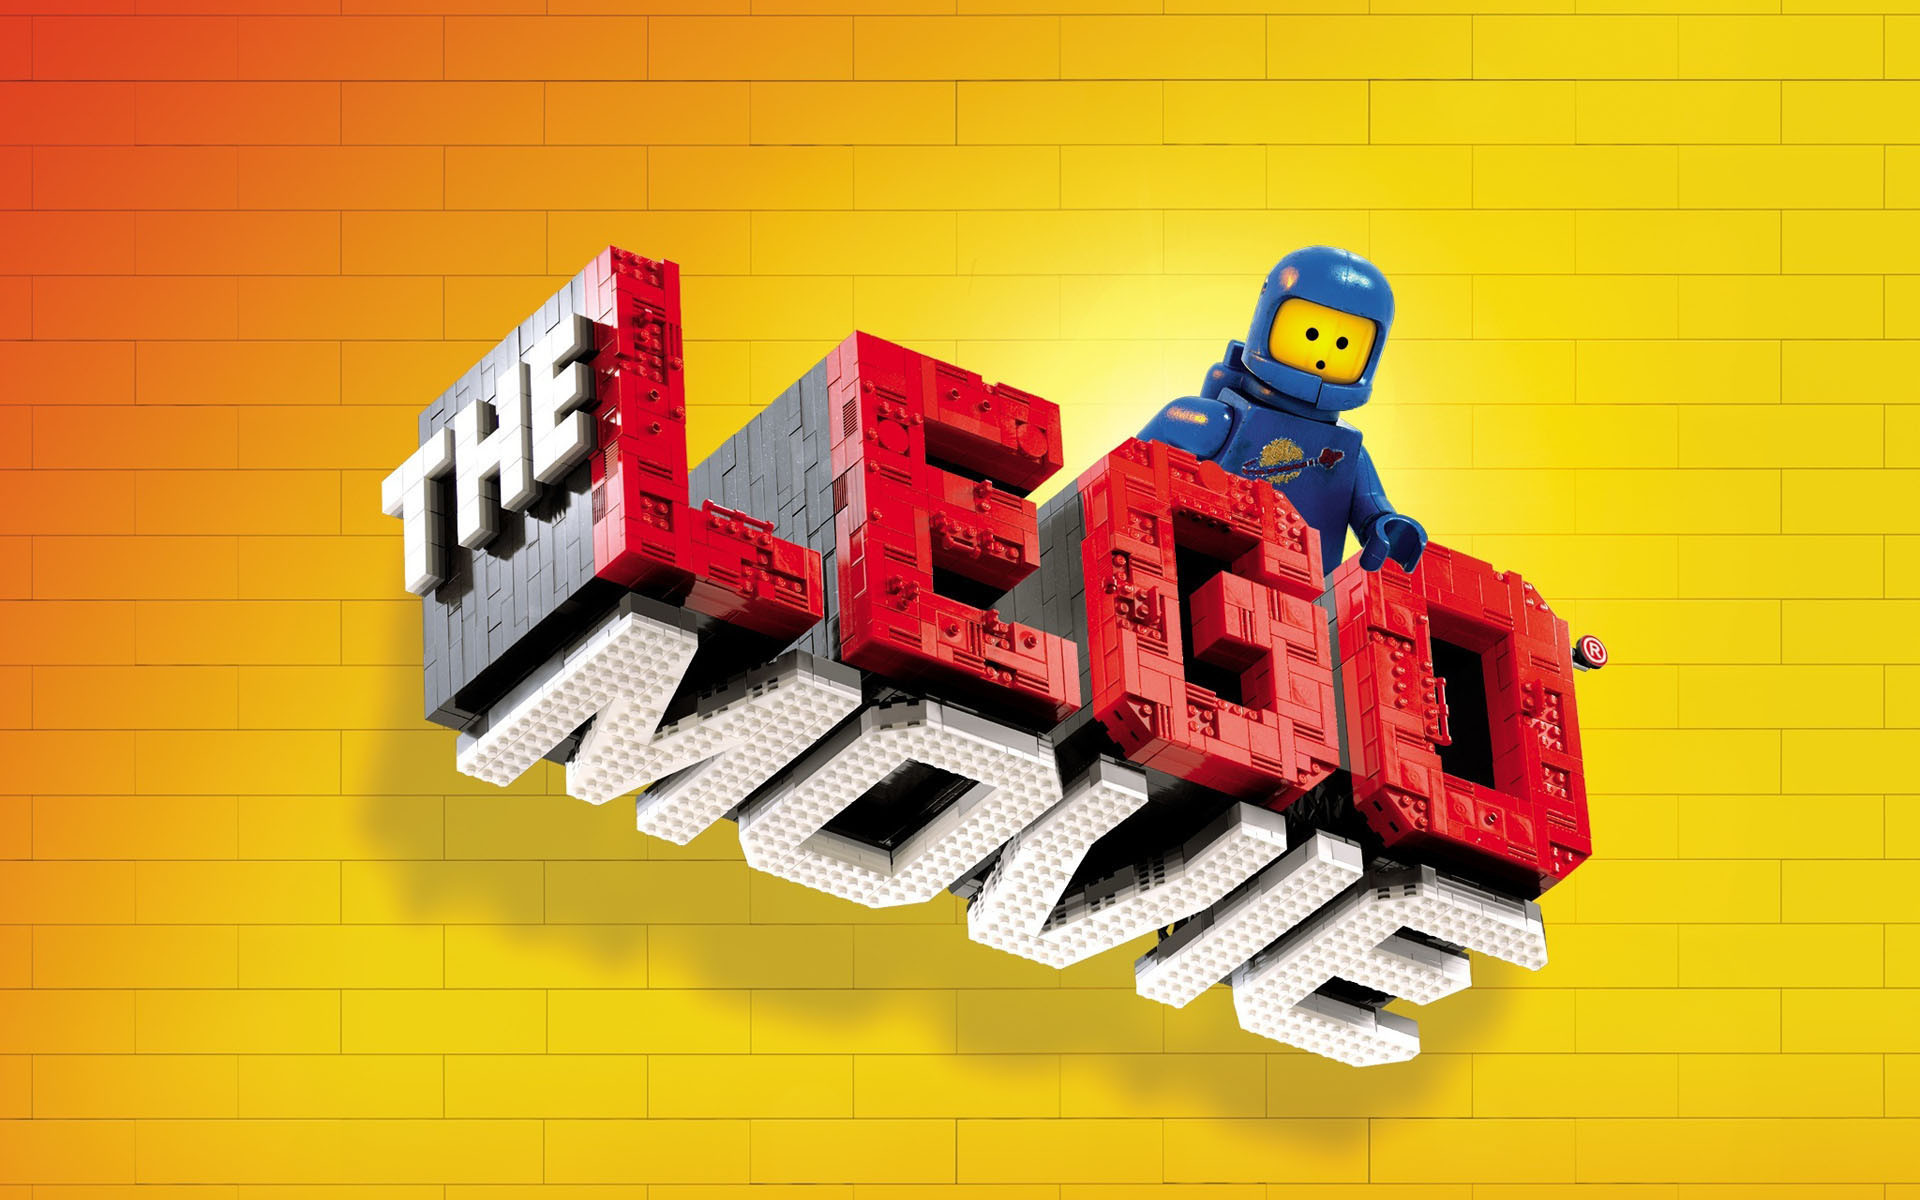 1920x1200 The Lego Movie Videogame Logo with the Blue Classic Spaceman   wallpaper